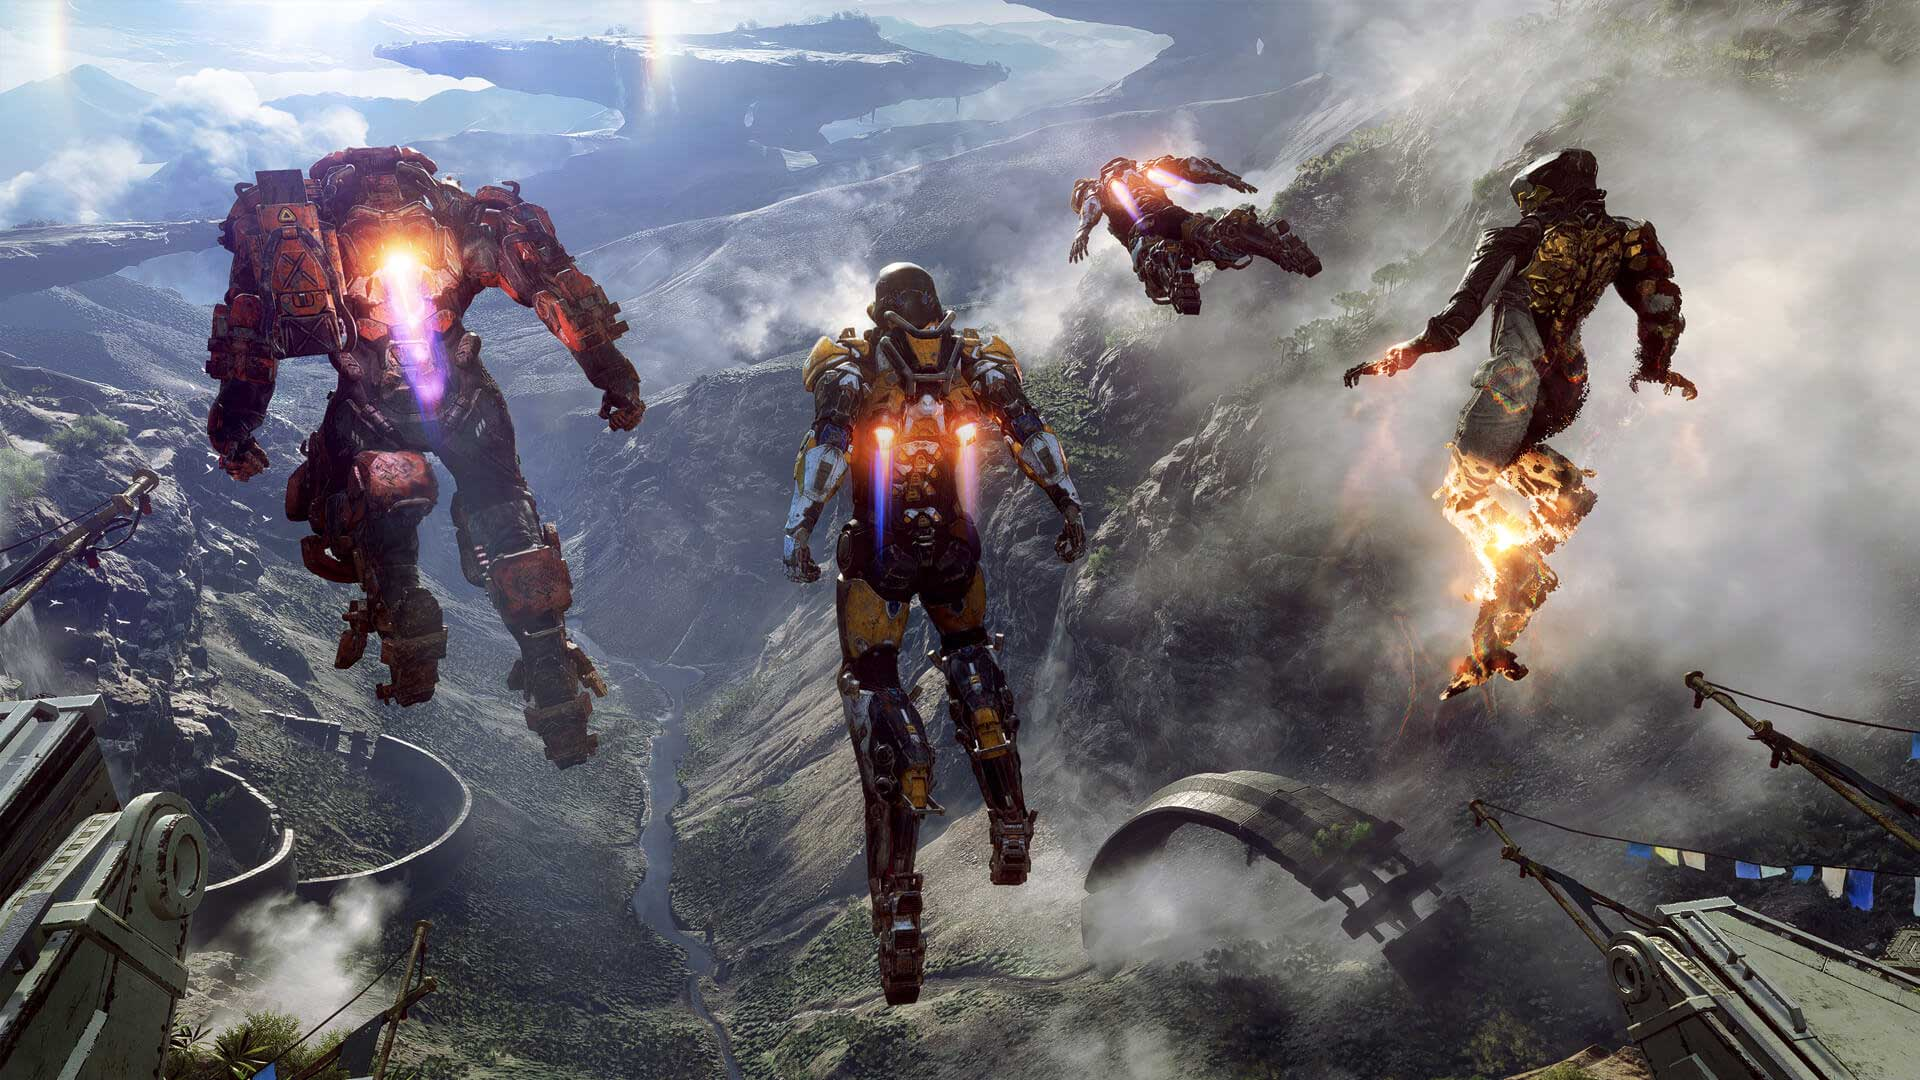 Bioware Teases 'Anthem' Trailer At EA Play